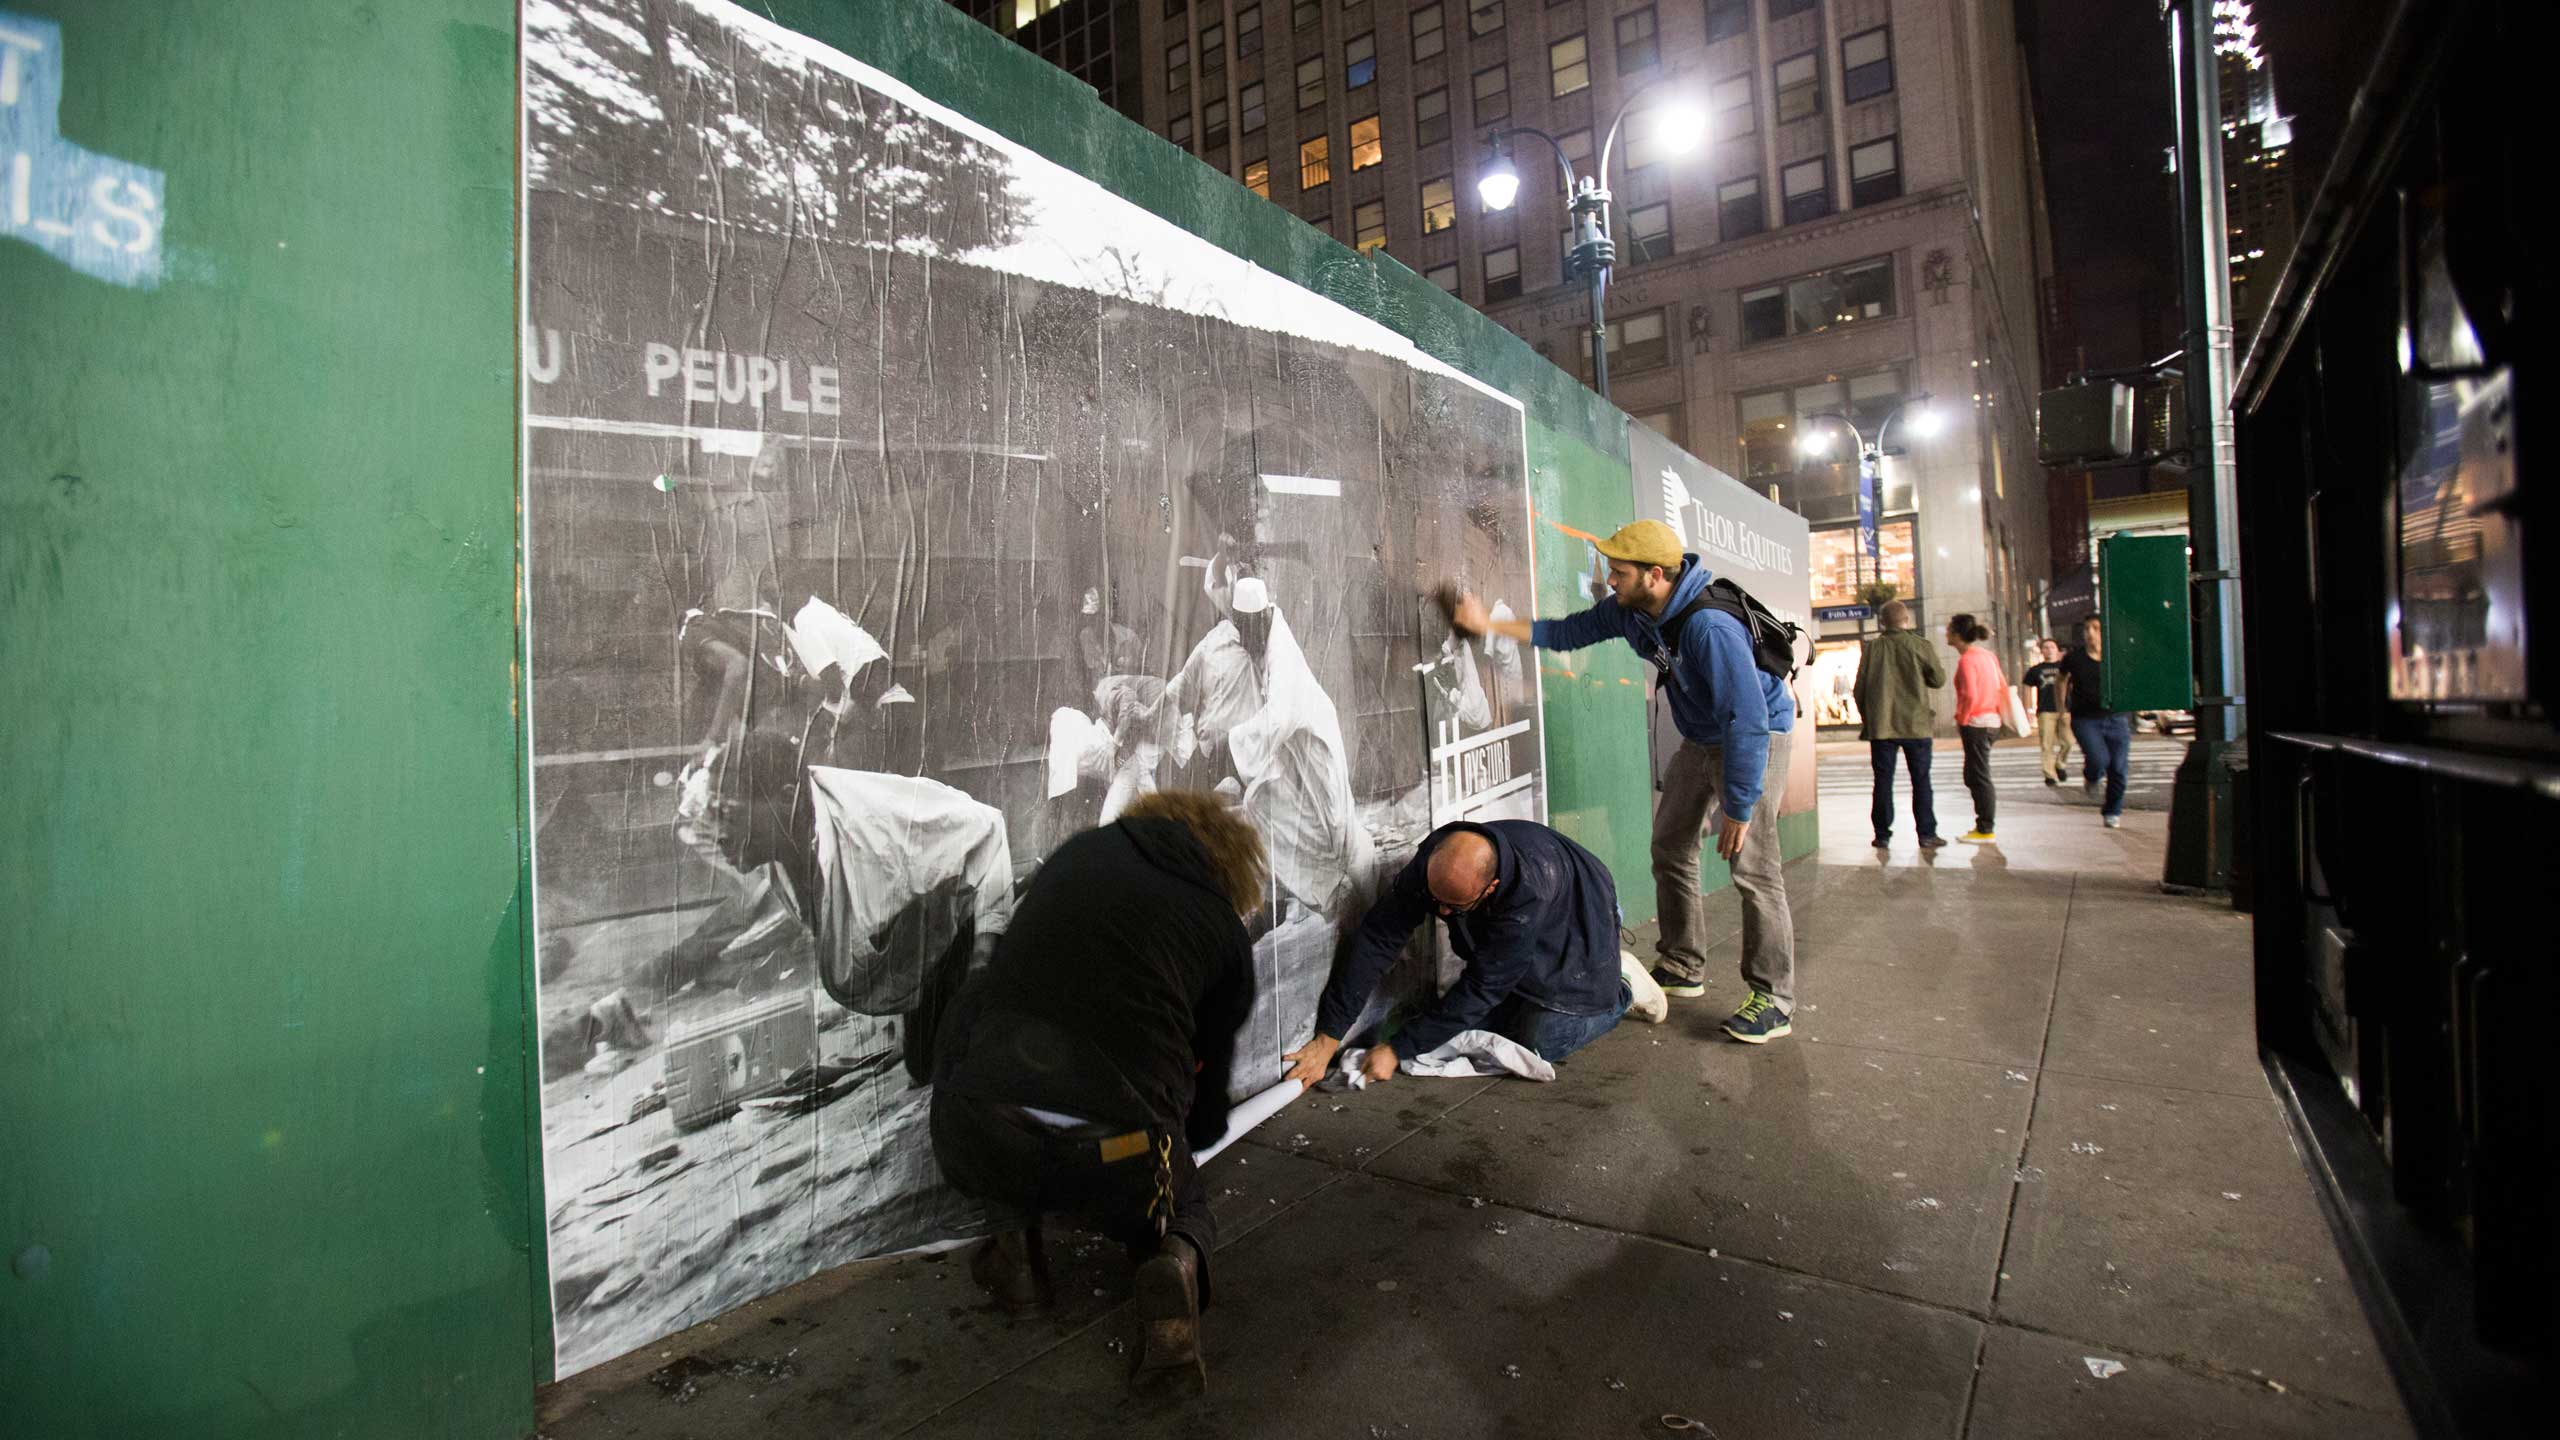 The Dysturb collective at work on 43rd Street and 5th Avenue in New York. October 16th 2014.